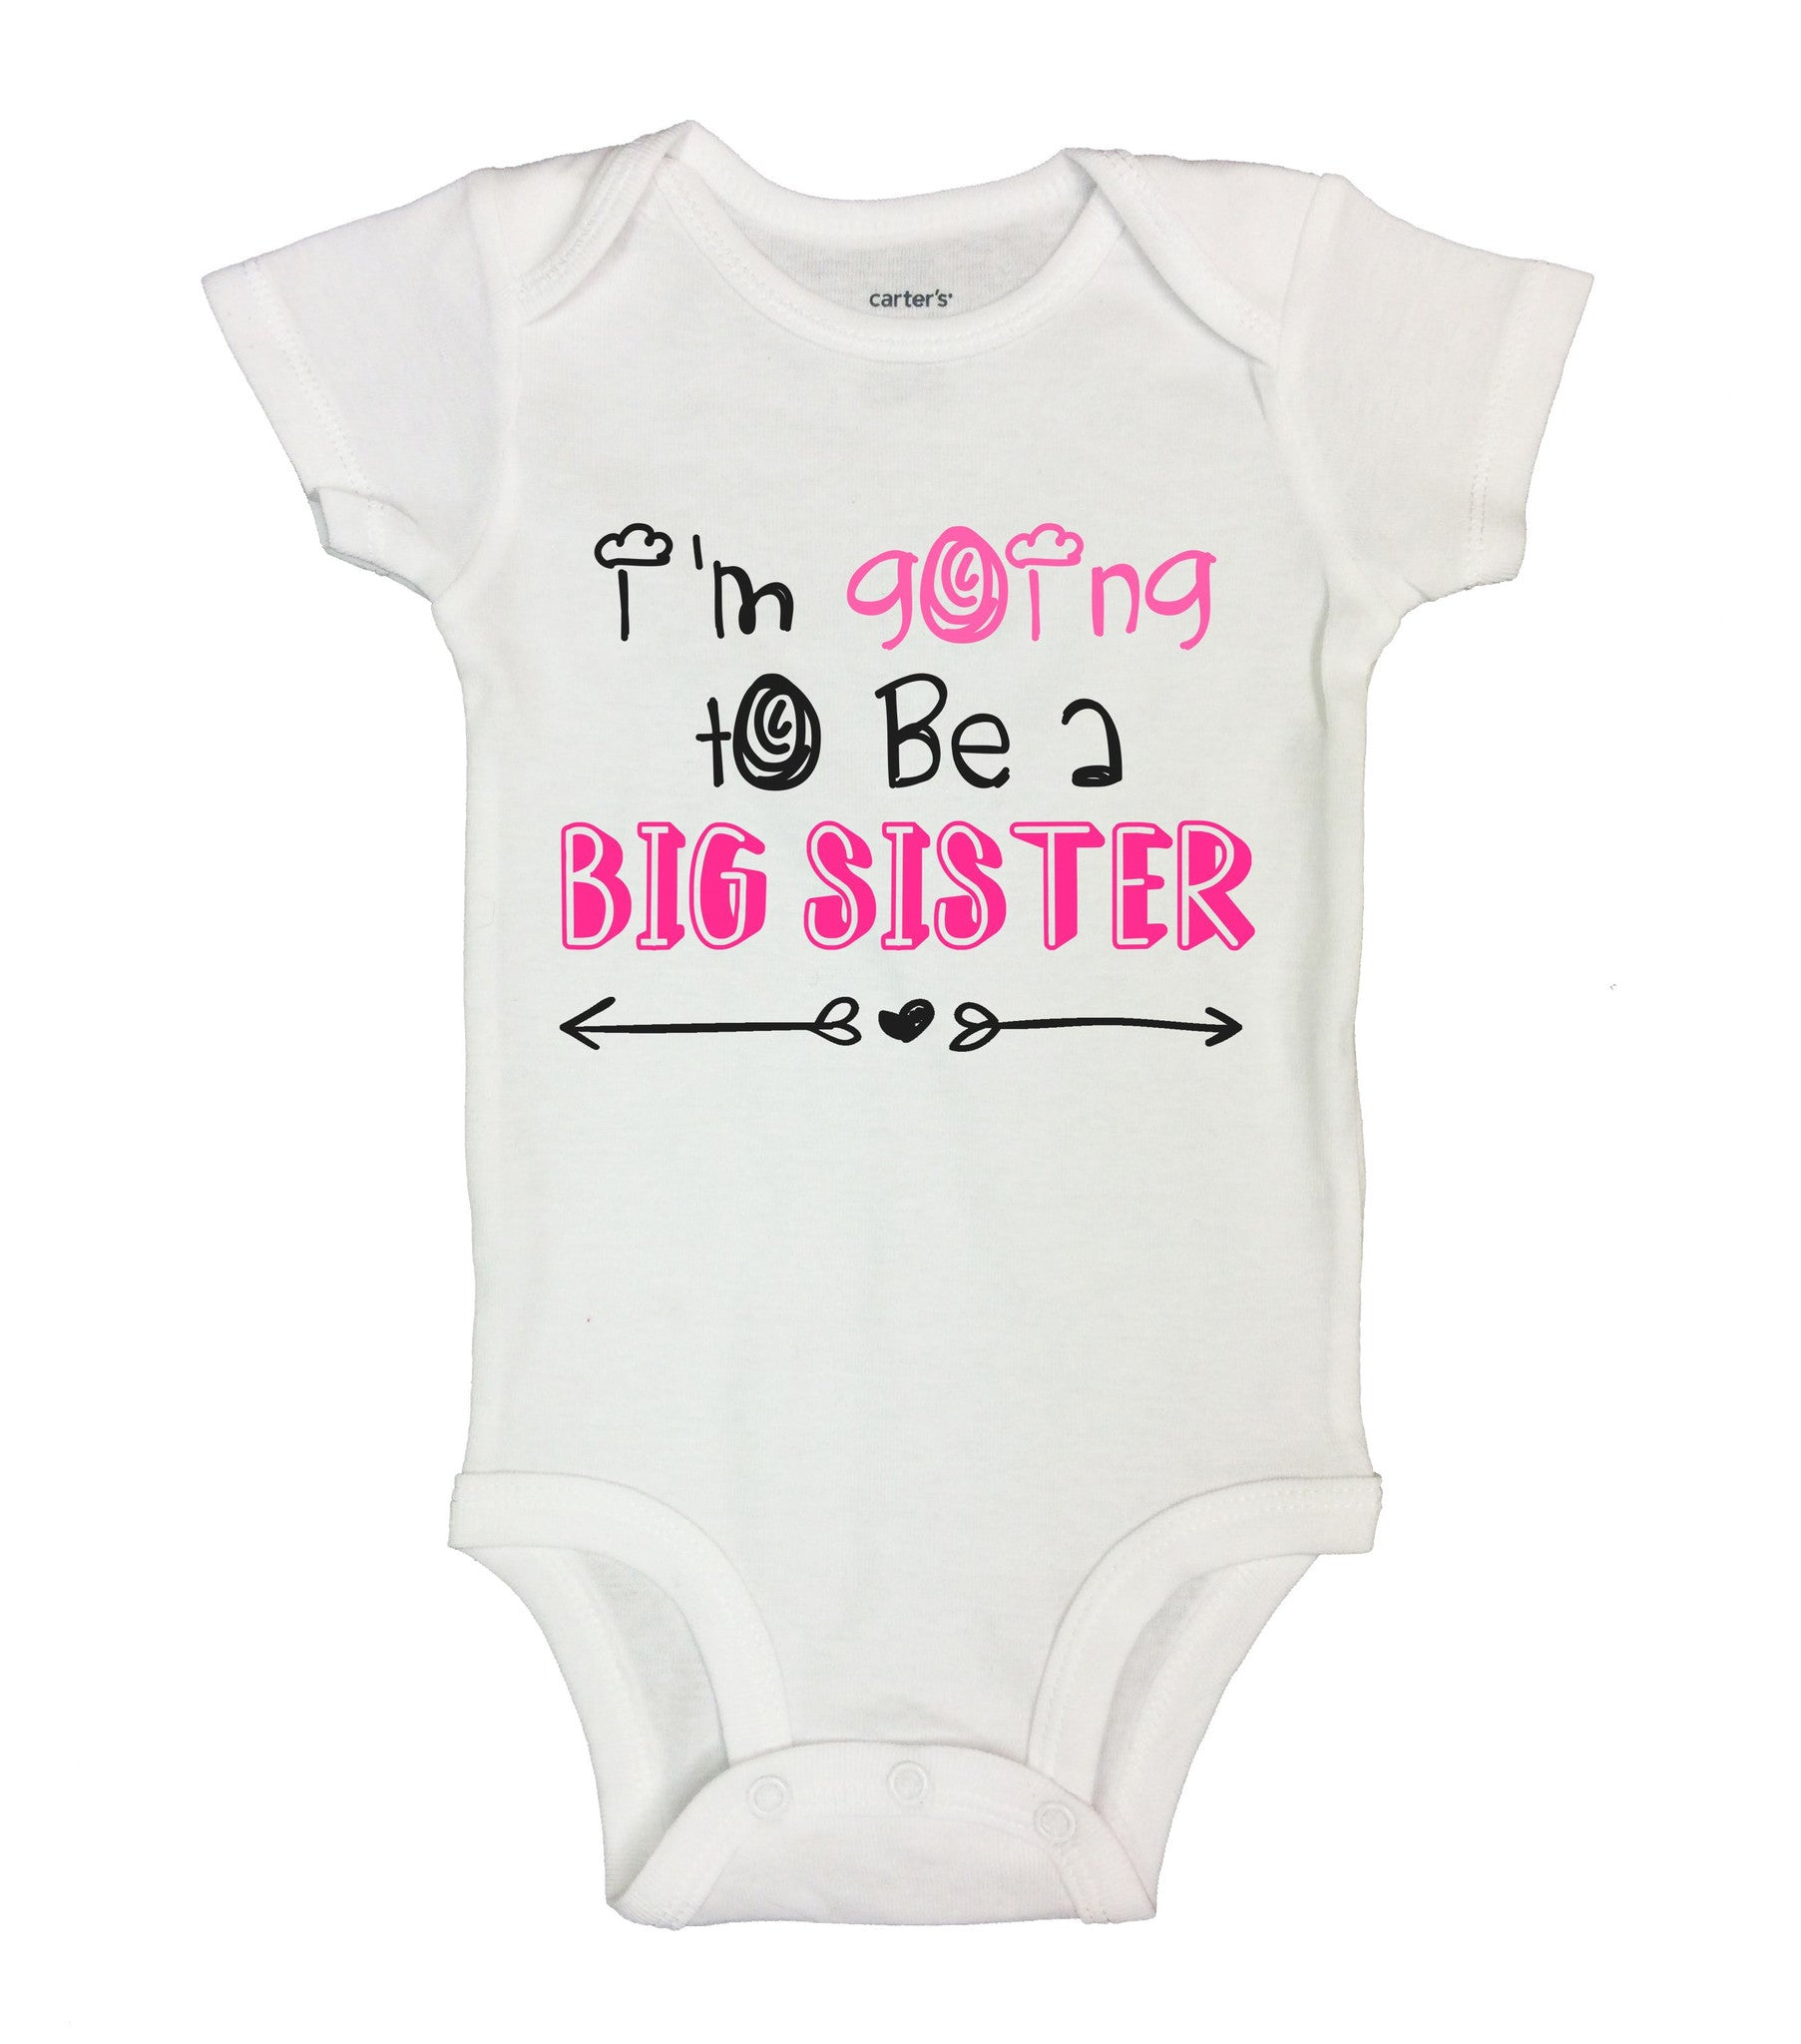 I'm Going To Be A Big Sister Funny Kids Onesie - B145 - Funny Shirts Tank Tops Burnouts and Triblends  - 2